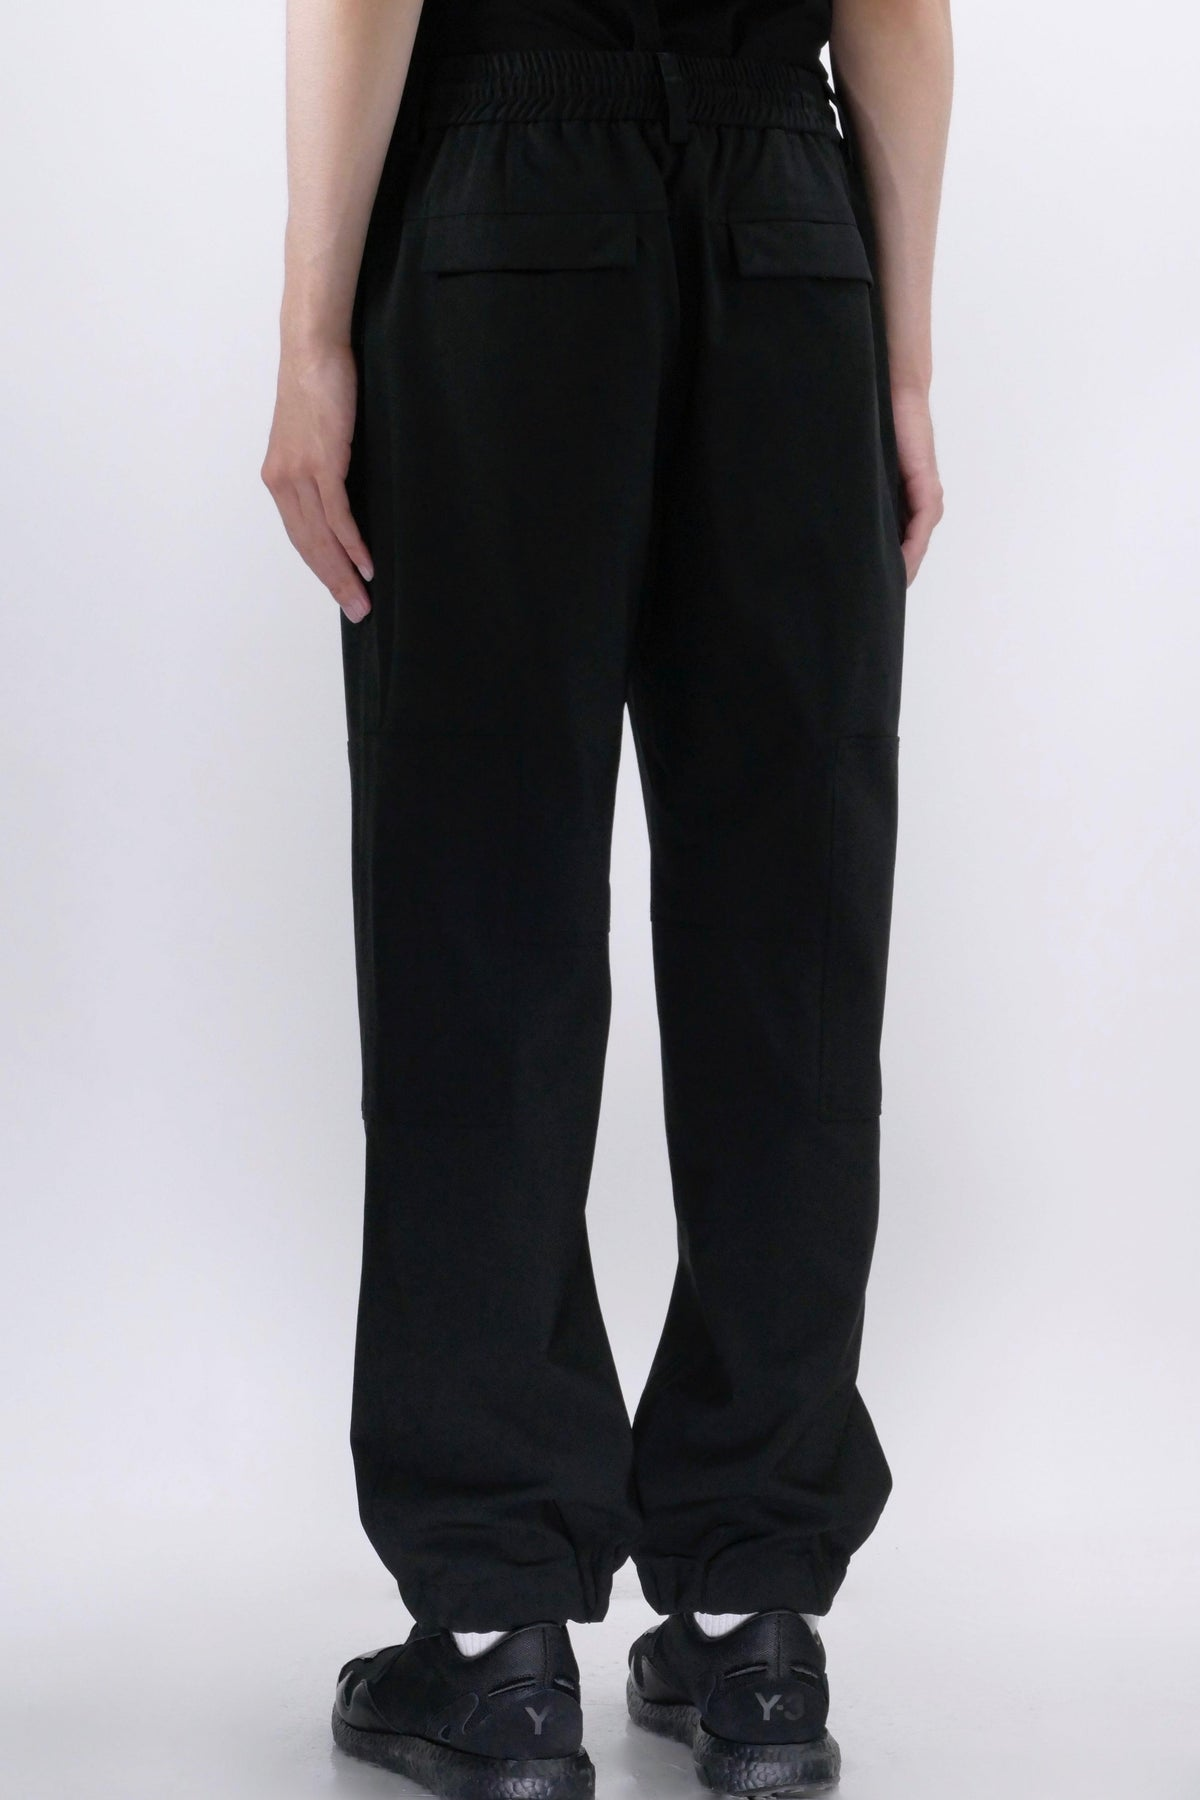 Juun.J Drawstring Pants Black